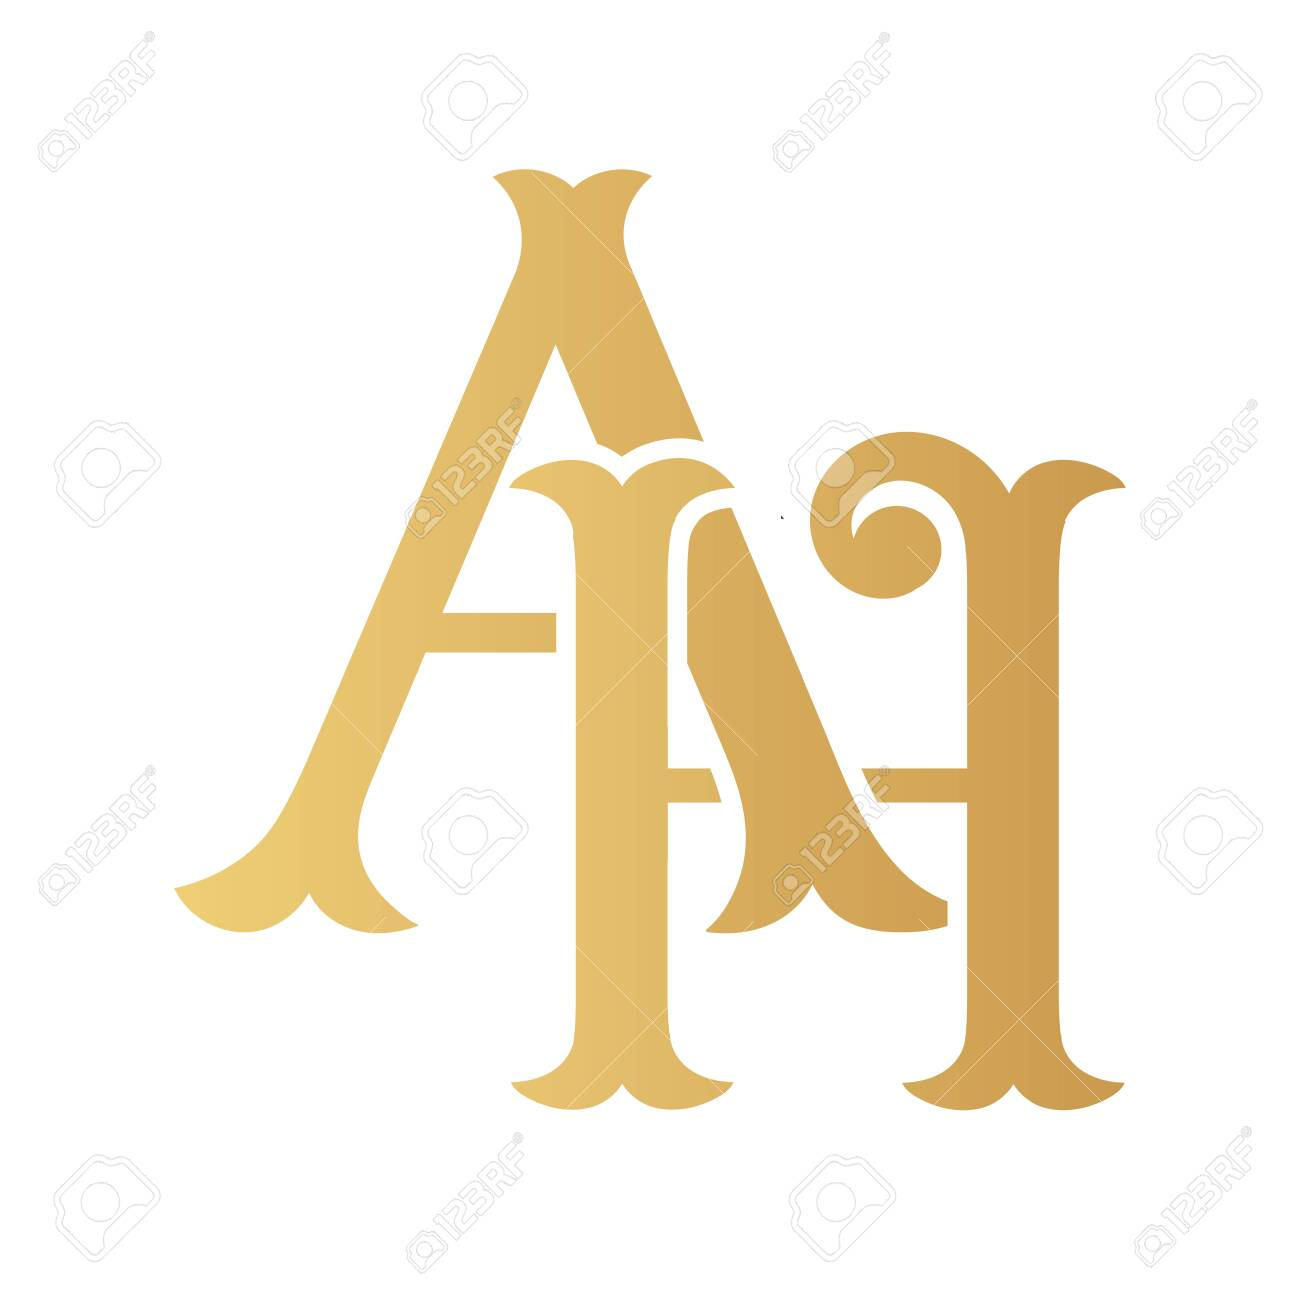 Golden Ah Monogram Isolated In White Royalty Free Cliparts Vectors And Stock Illustration Image 136228786